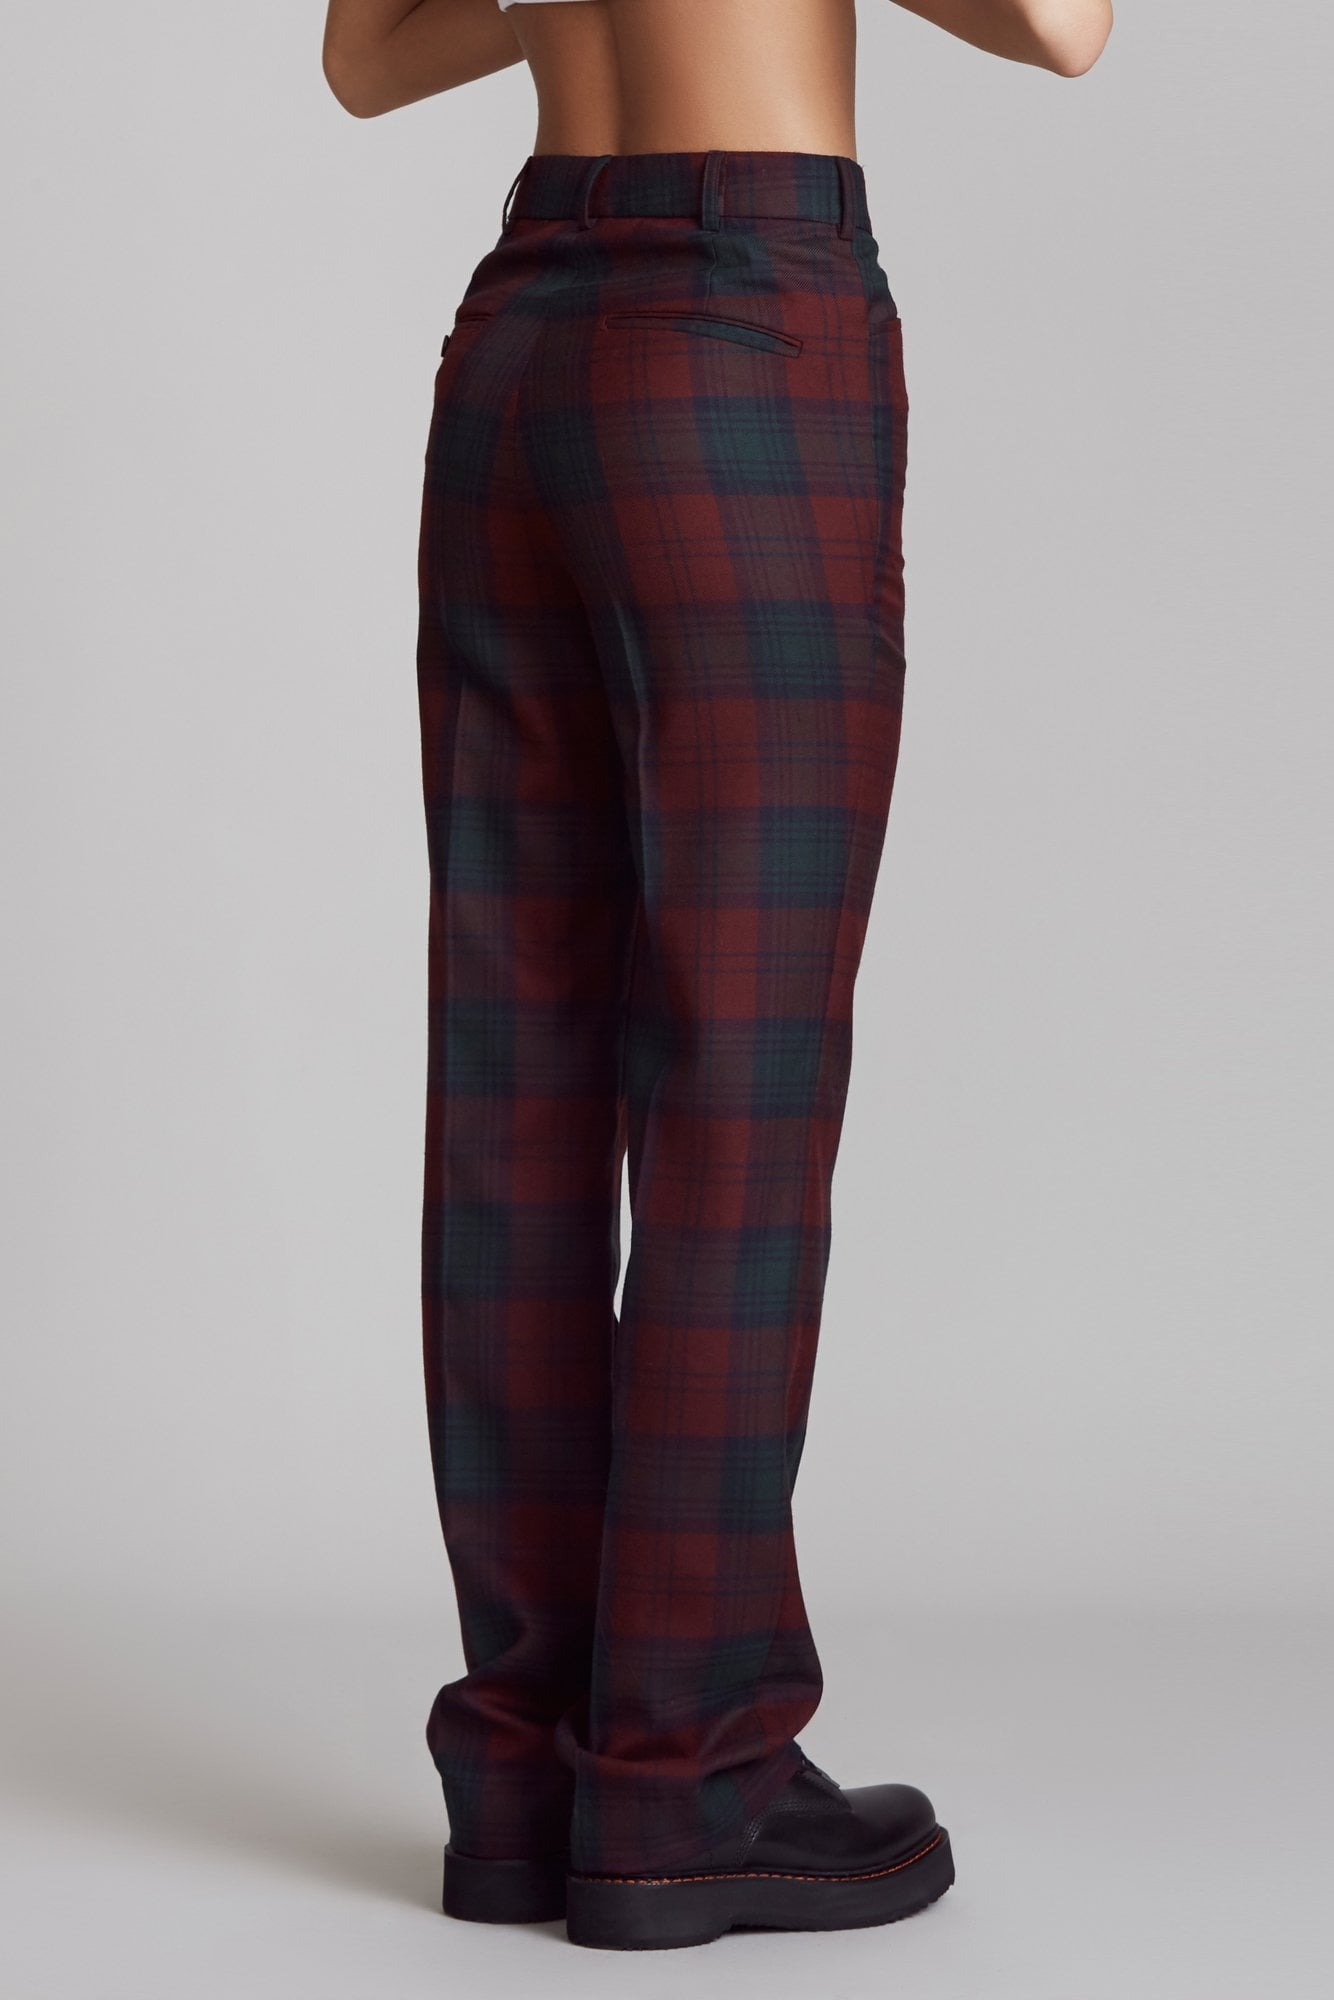 Colleen Pant - Maroon Plaid